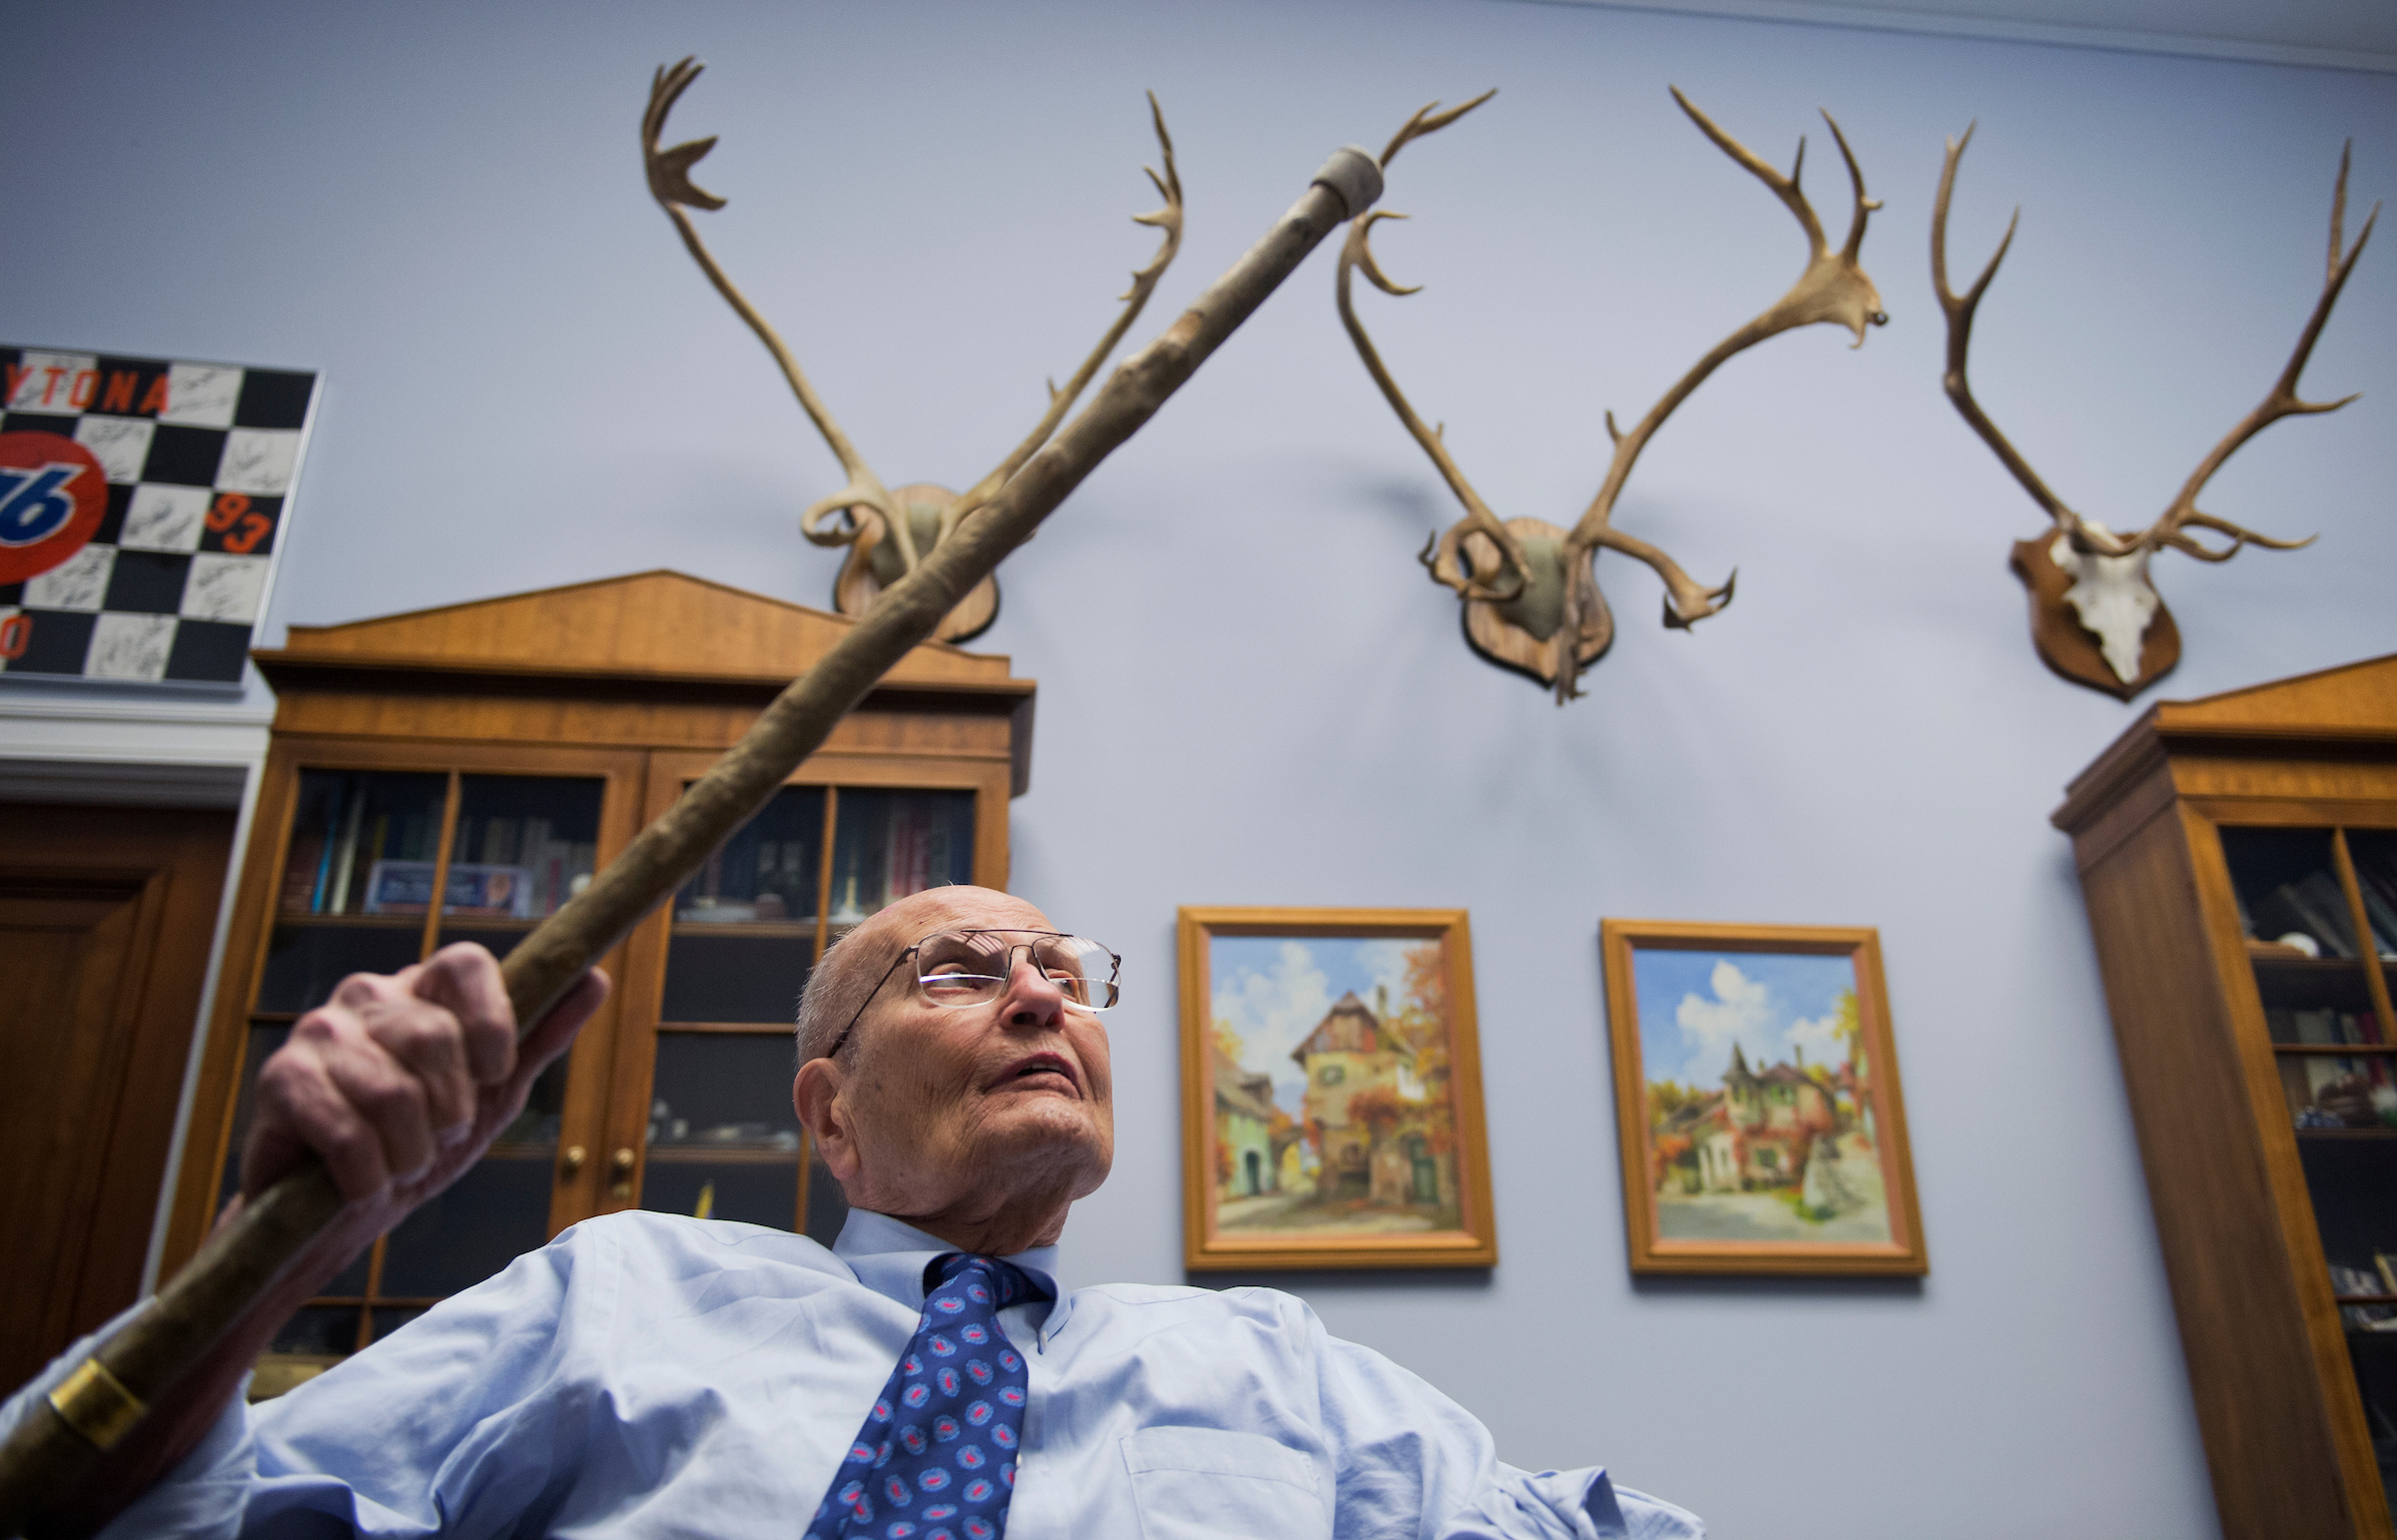 UNITED STATES - FEBRUARY 26: Rep. John Dingell, D-Mich., talks about memorabilia in his Rayburn office. (Photo By Tom Williams/CQ Roll Call)